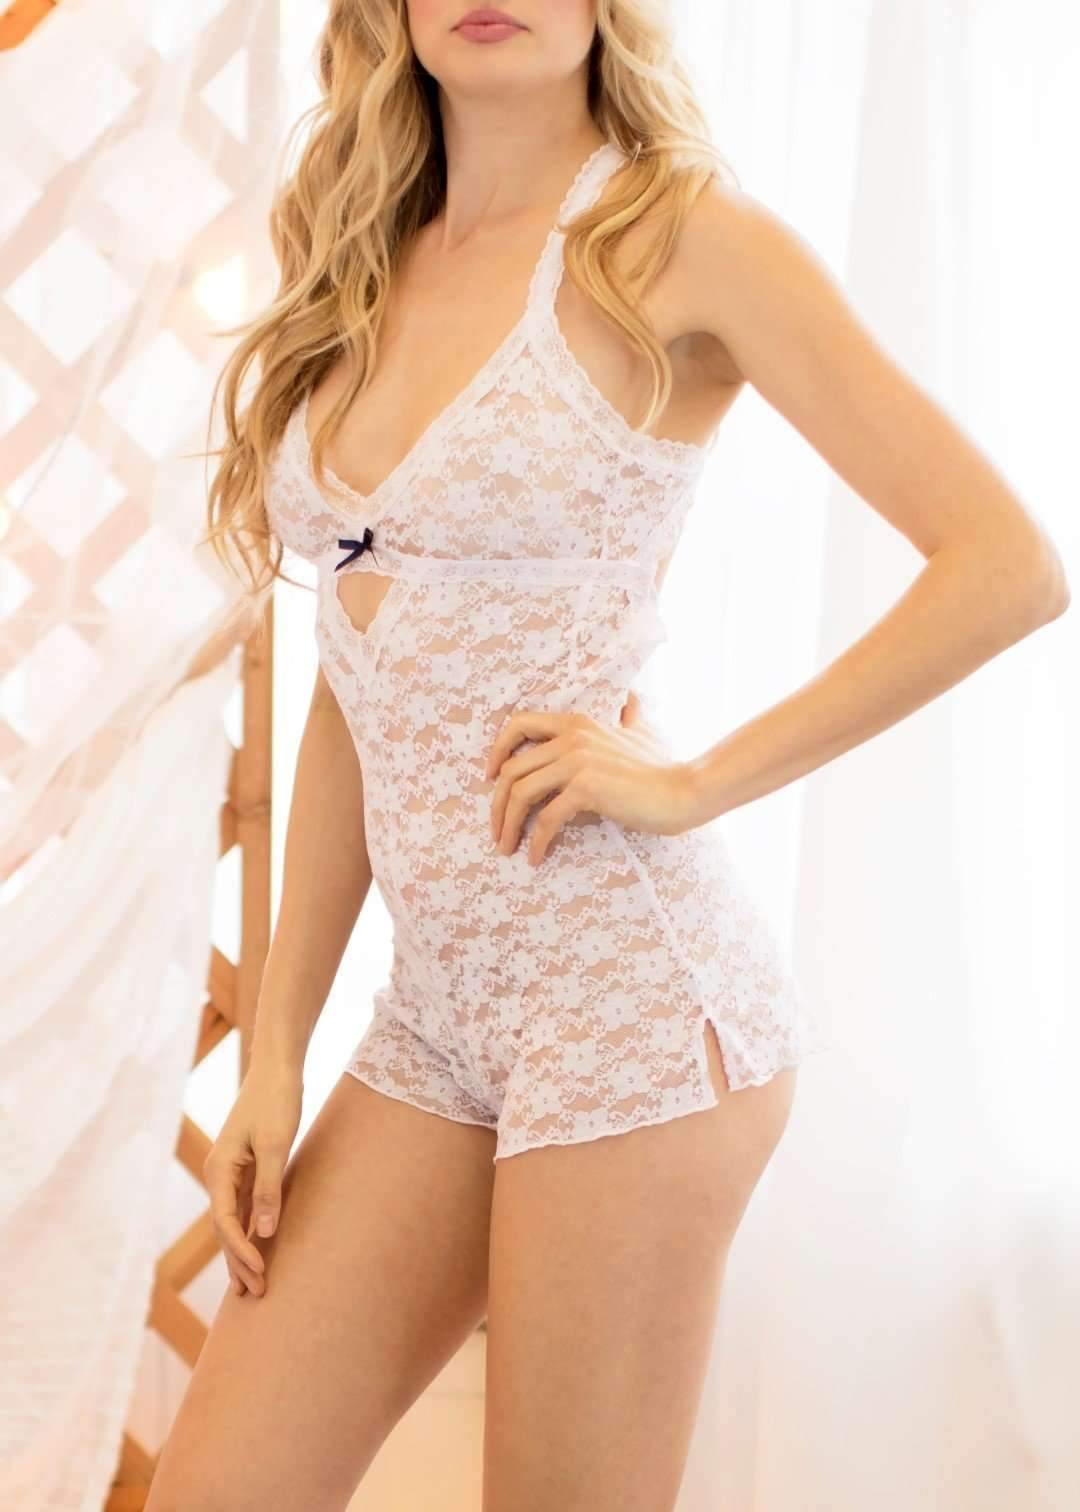 Peek A Dew Mia Teddy-Honeydew Intimates-Ski Bunny-Medium-Honeydew Intimates